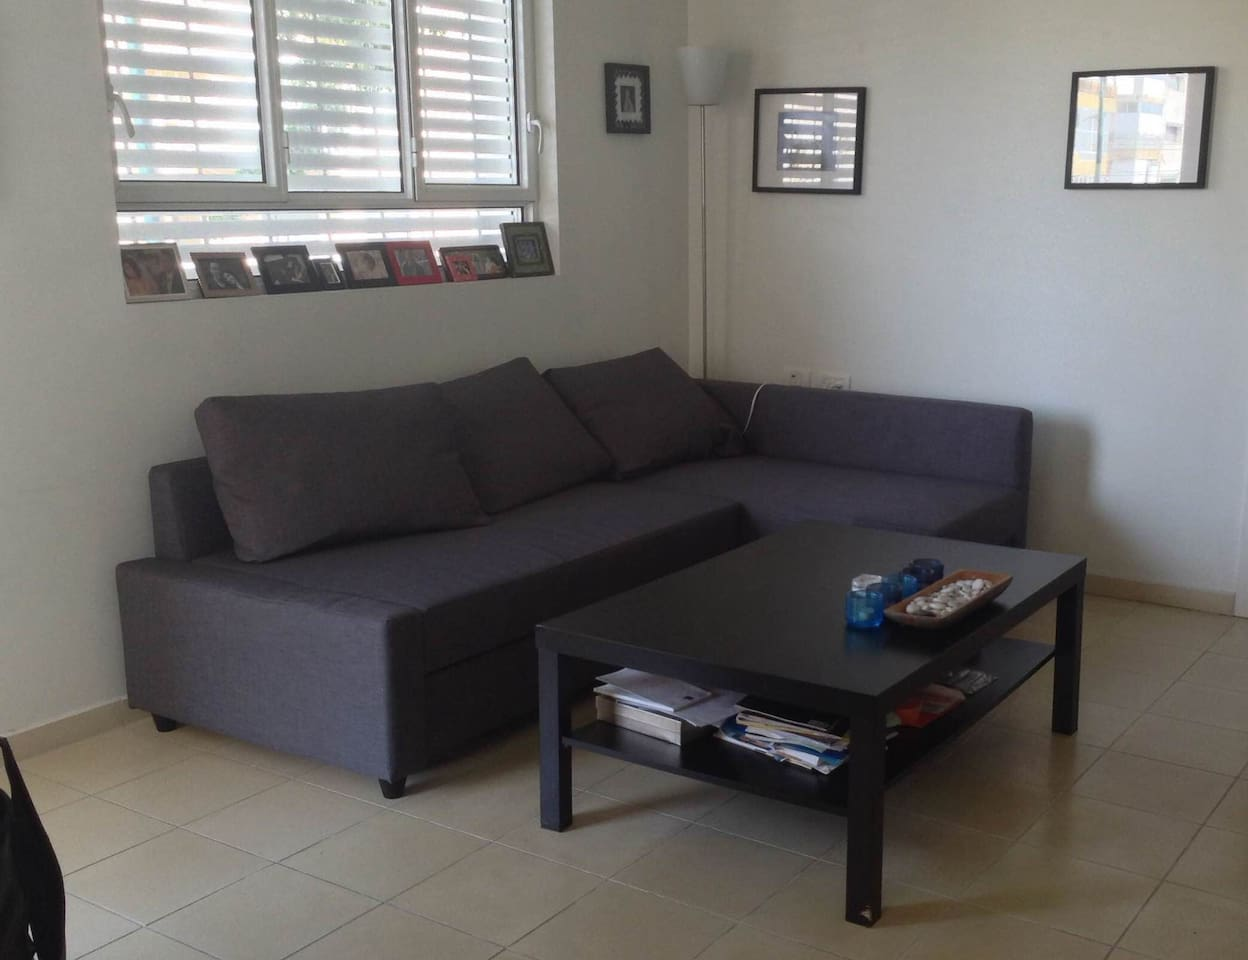 Living Room couch, converts easily into a bed